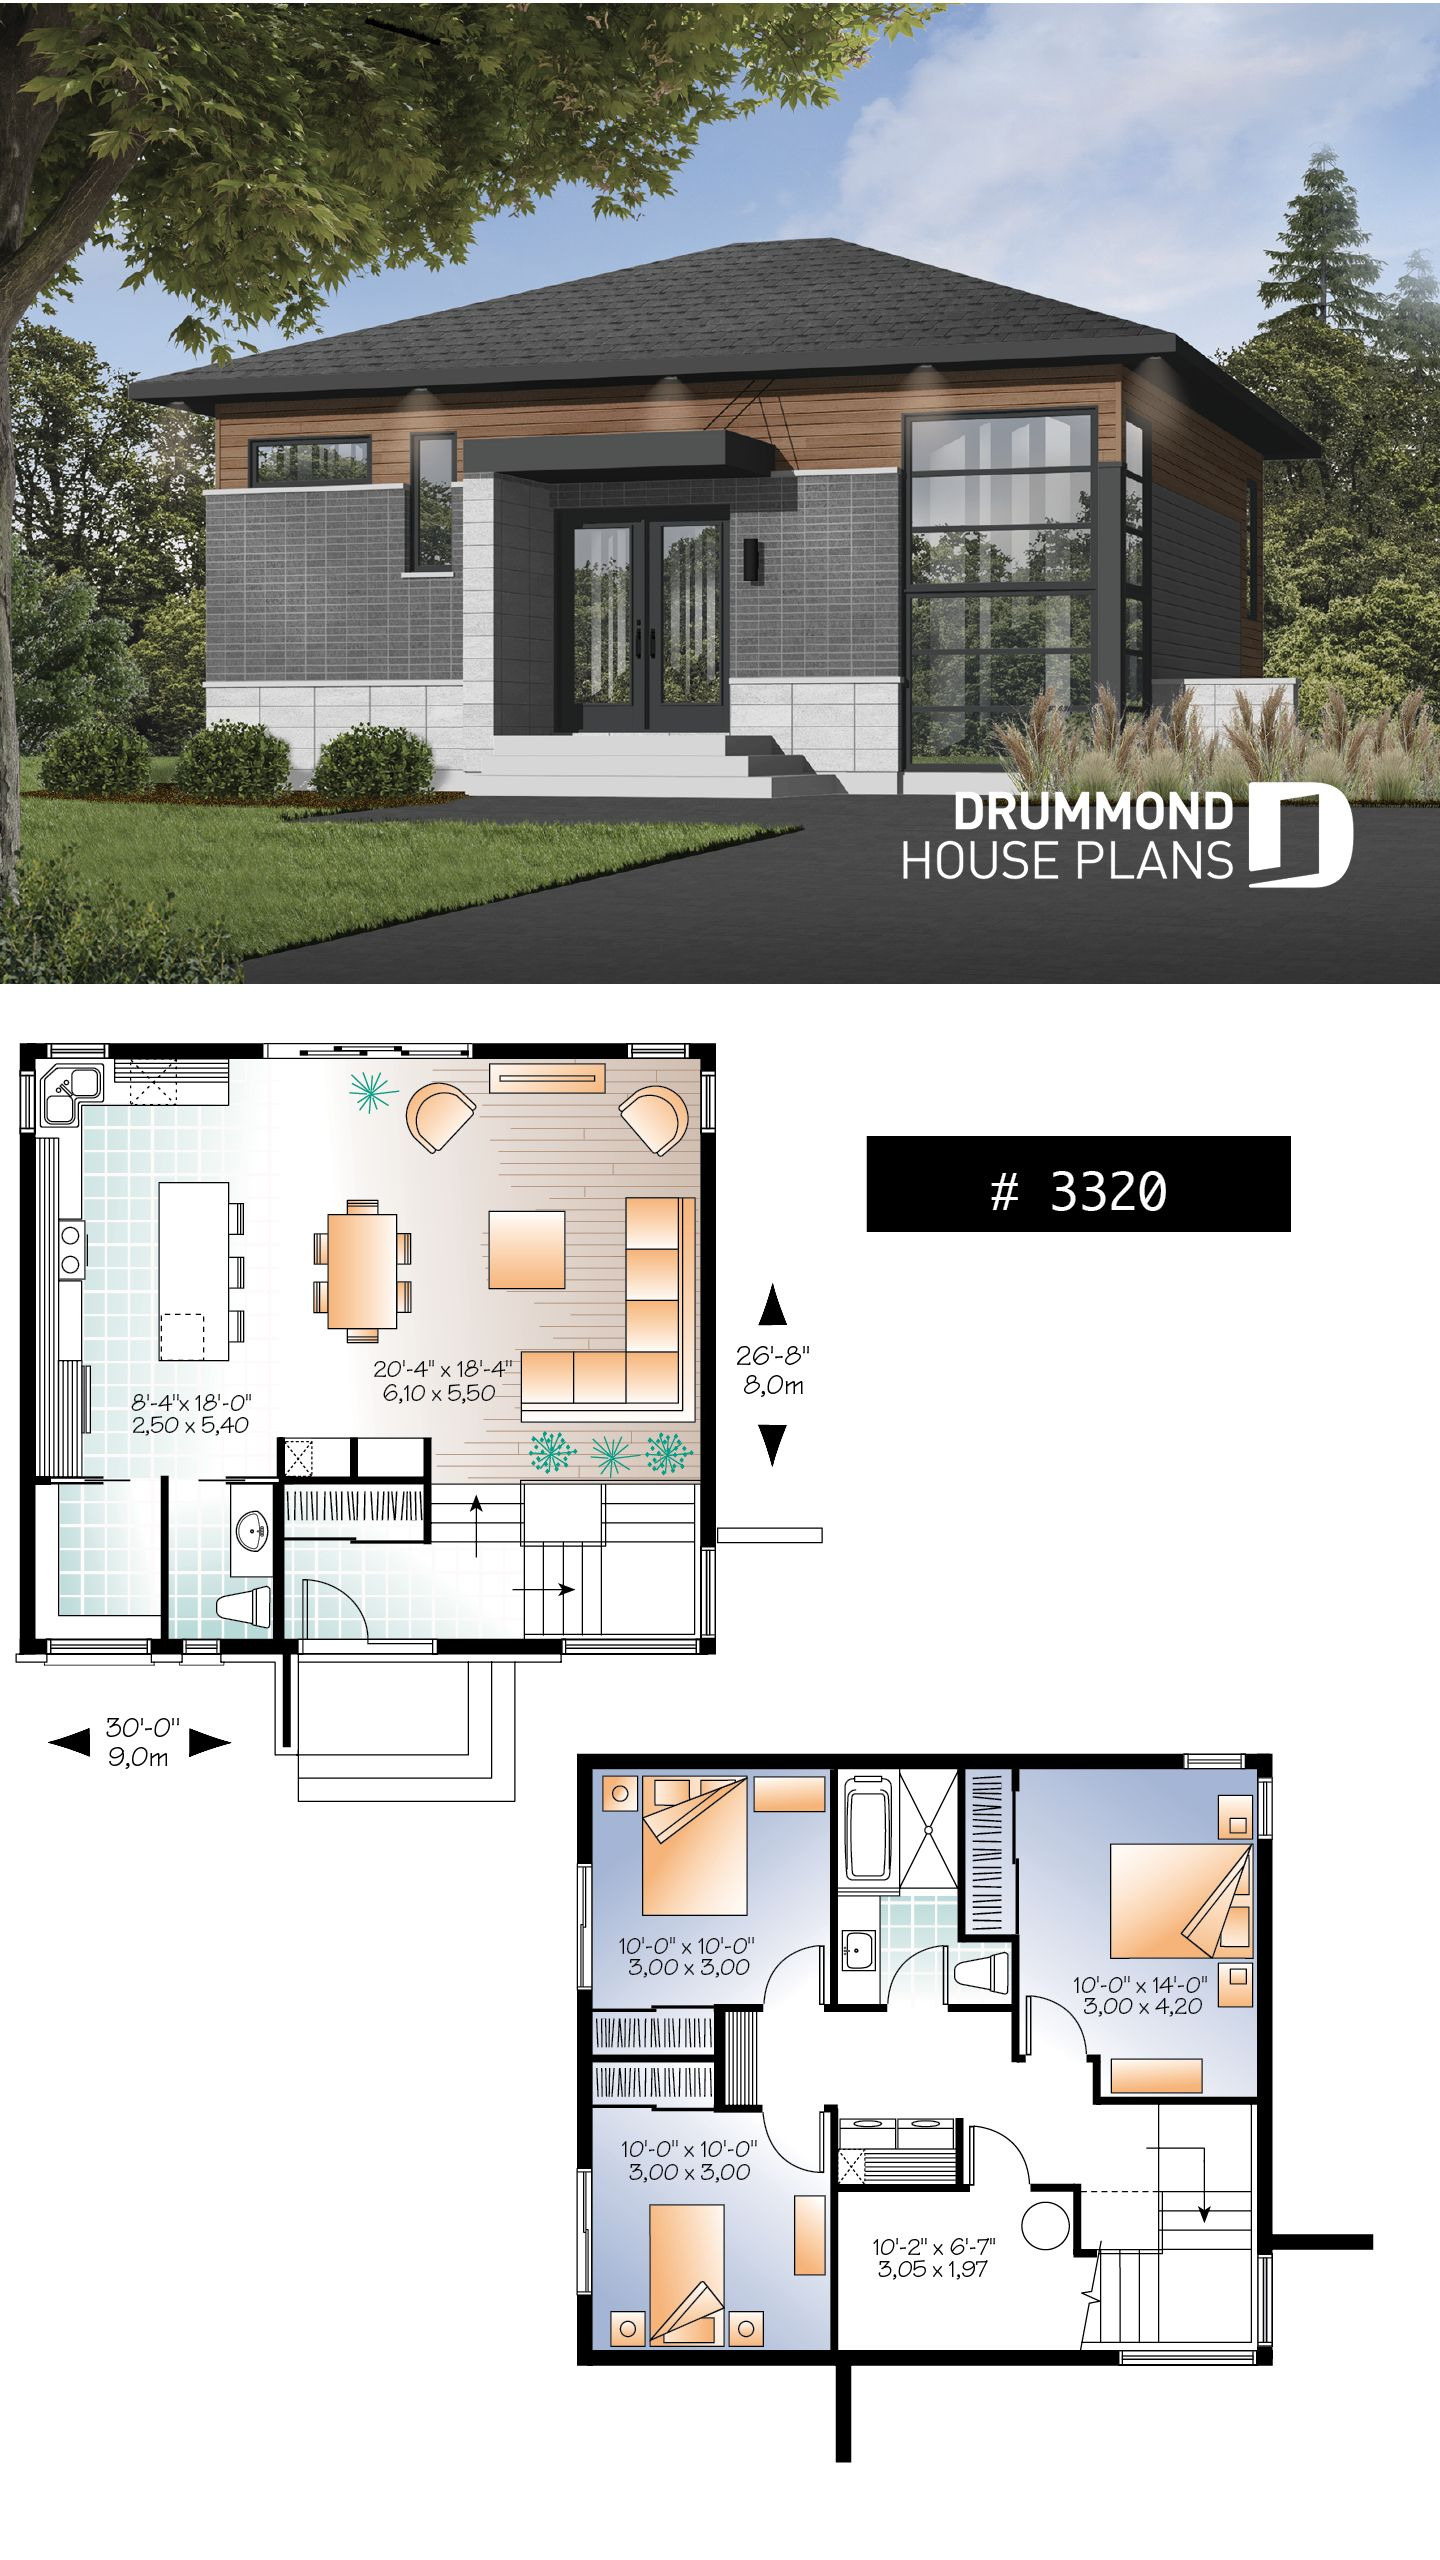 Low Budget Modern 3 Bedroom House Design New House Plan solana No 3320